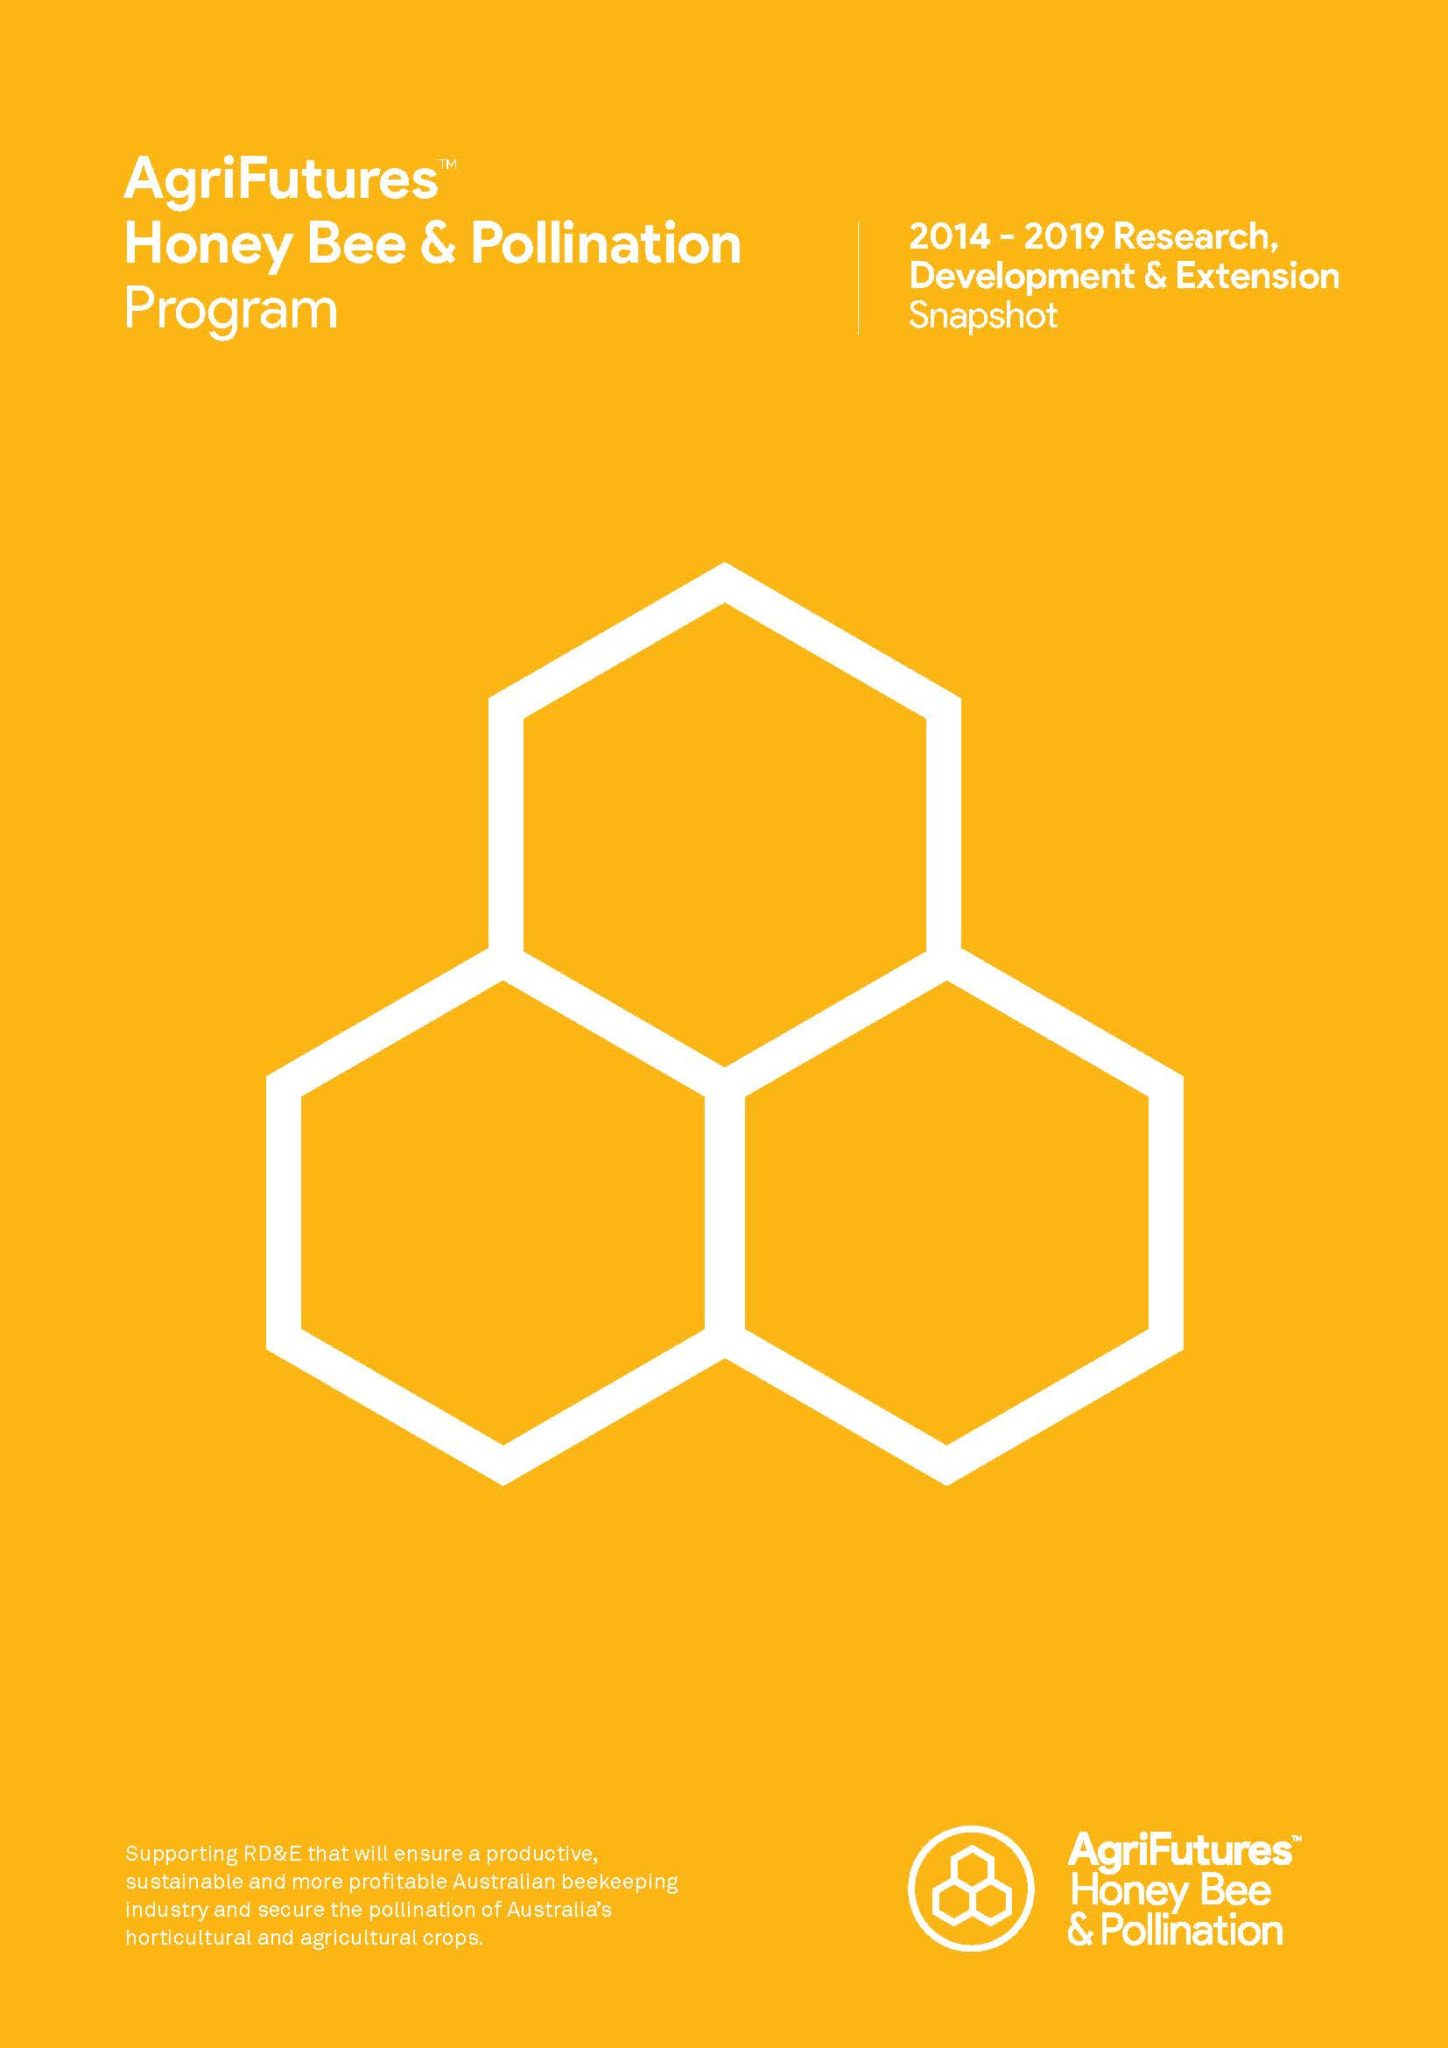 AgriFutures™ Honey Bee & Pollination Program 2019 Snapshot - image